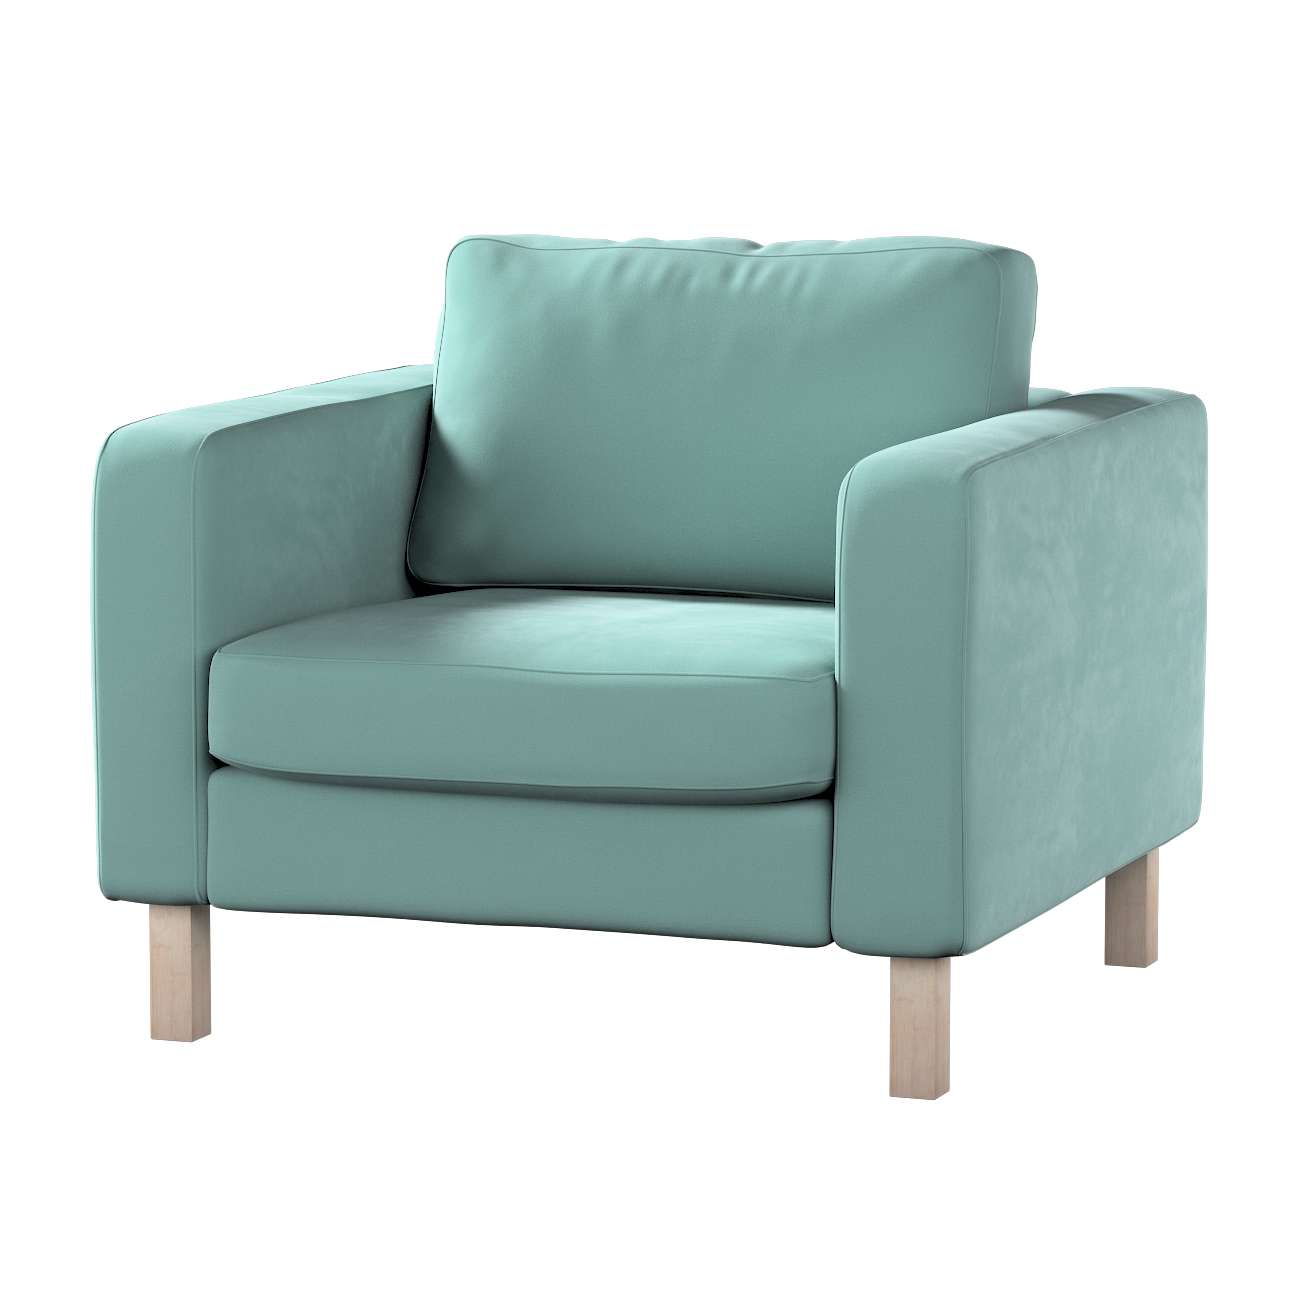 Karlstad armchair cover in collection Velvet, fabric: 704-18